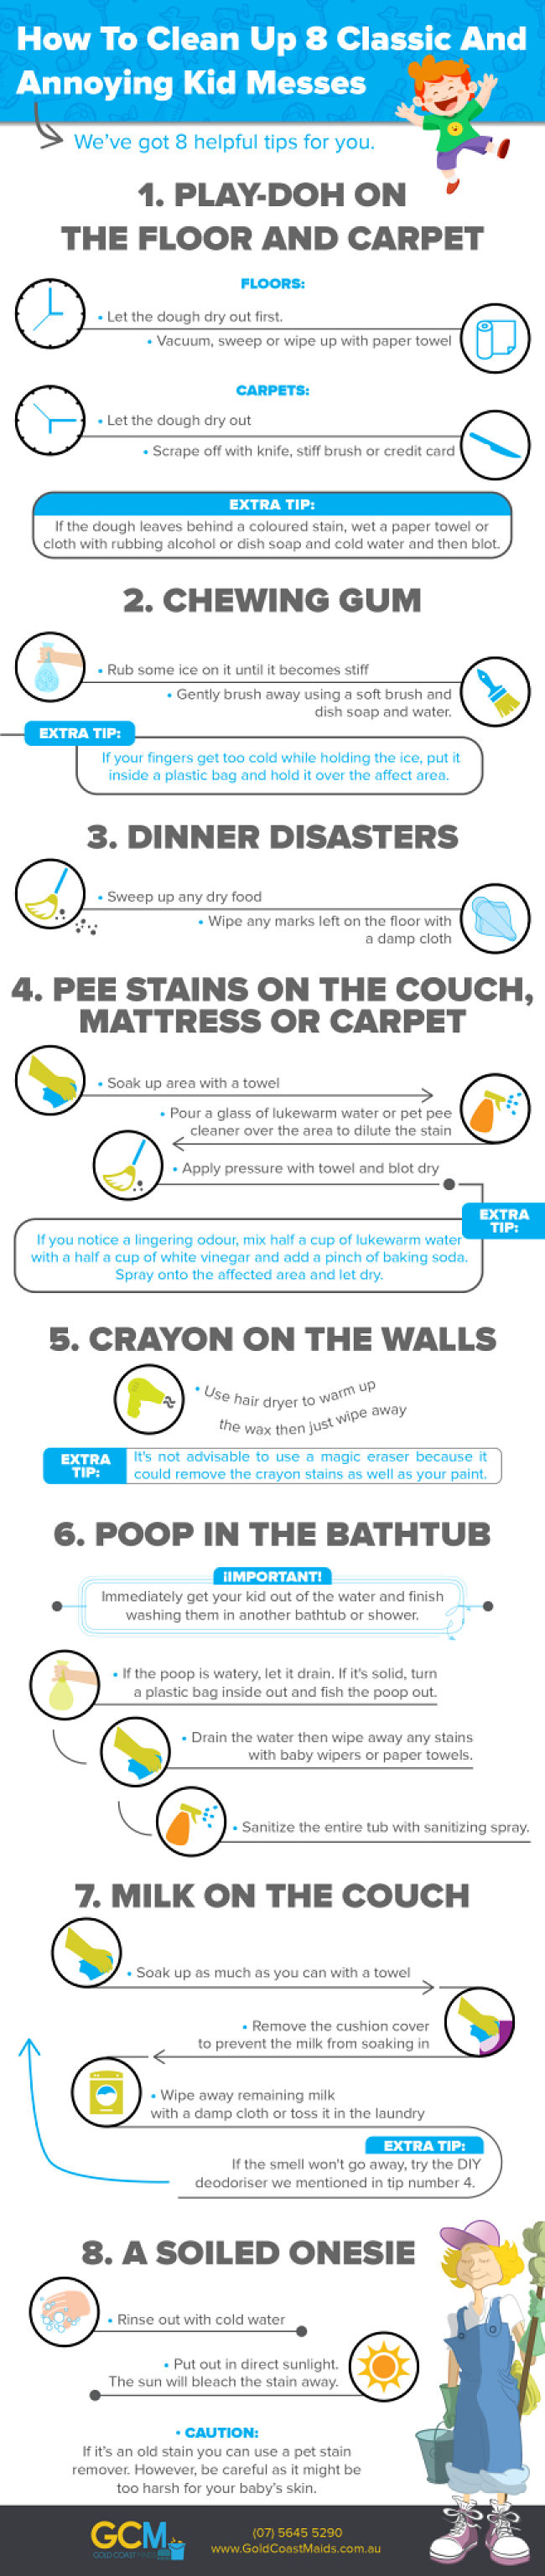 How to Clean Up 8 Classic and Annoying Kid Messes